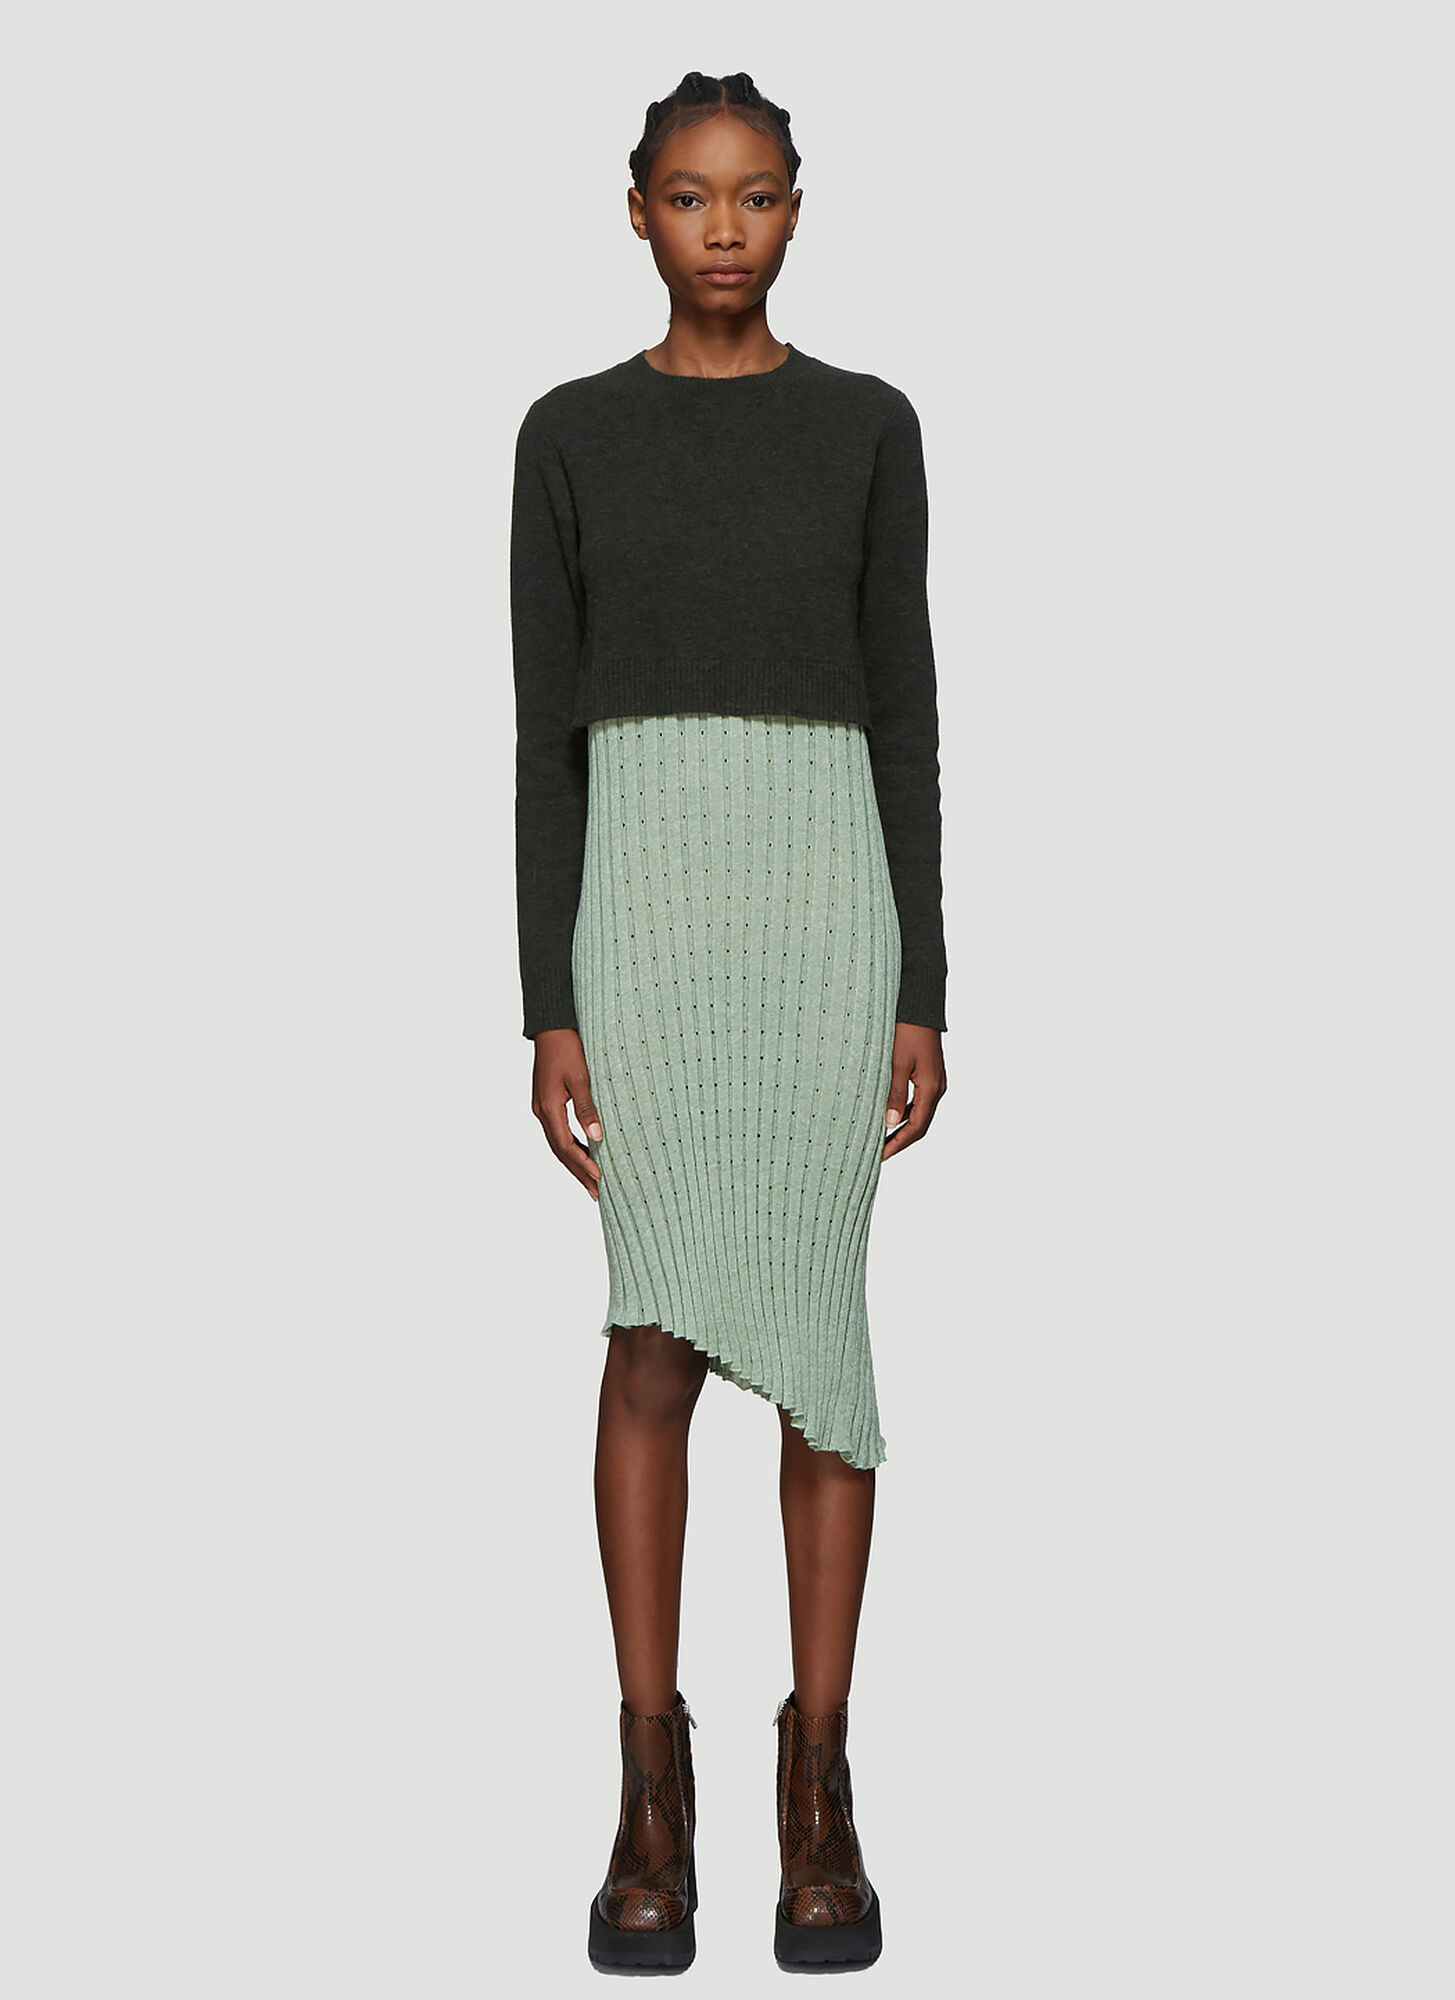 JW Anderson Contrast Panel Pleated Dress in Green